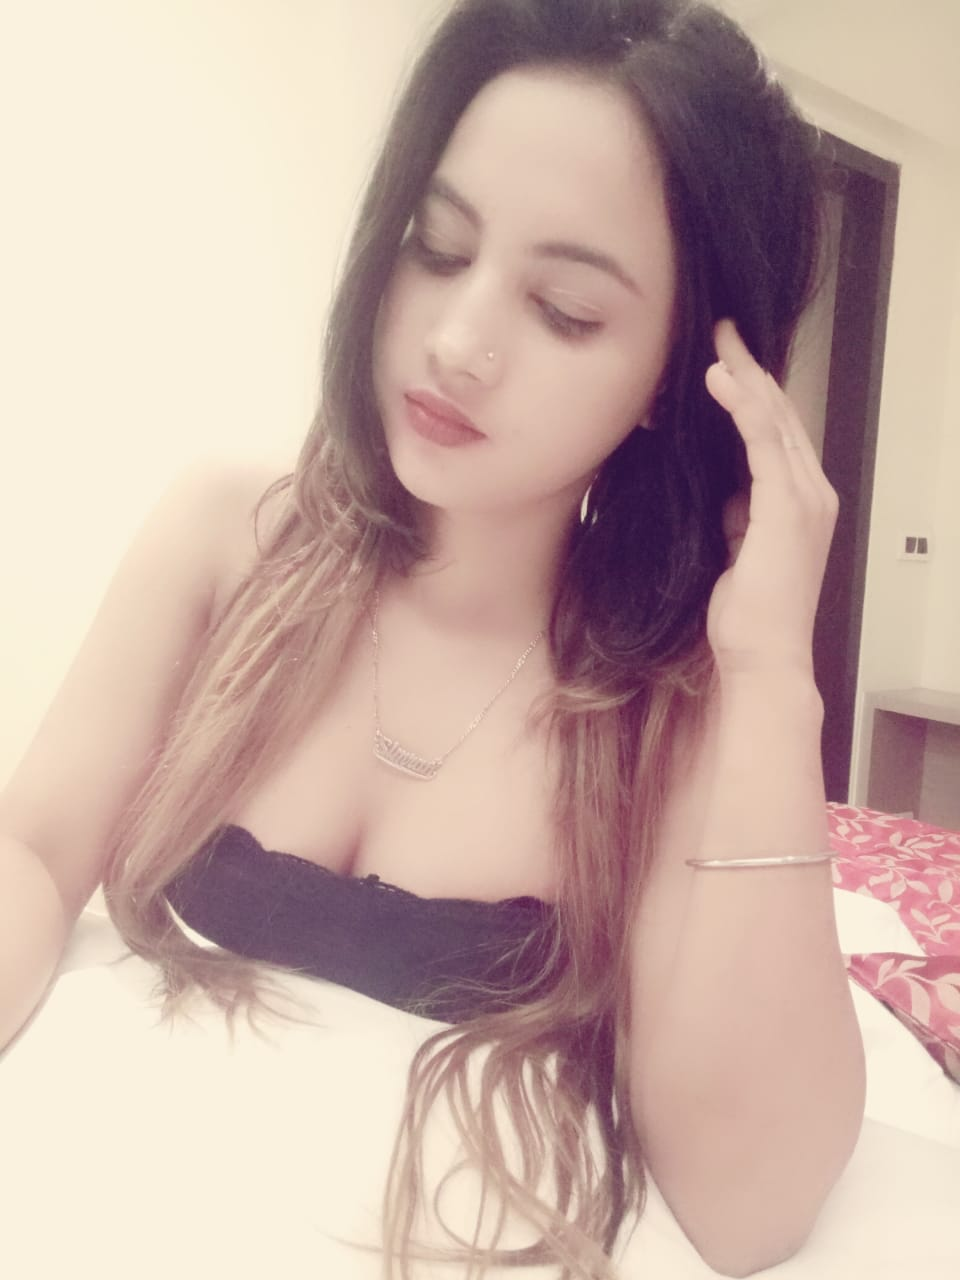 poonam-nagar Vip Escorts In